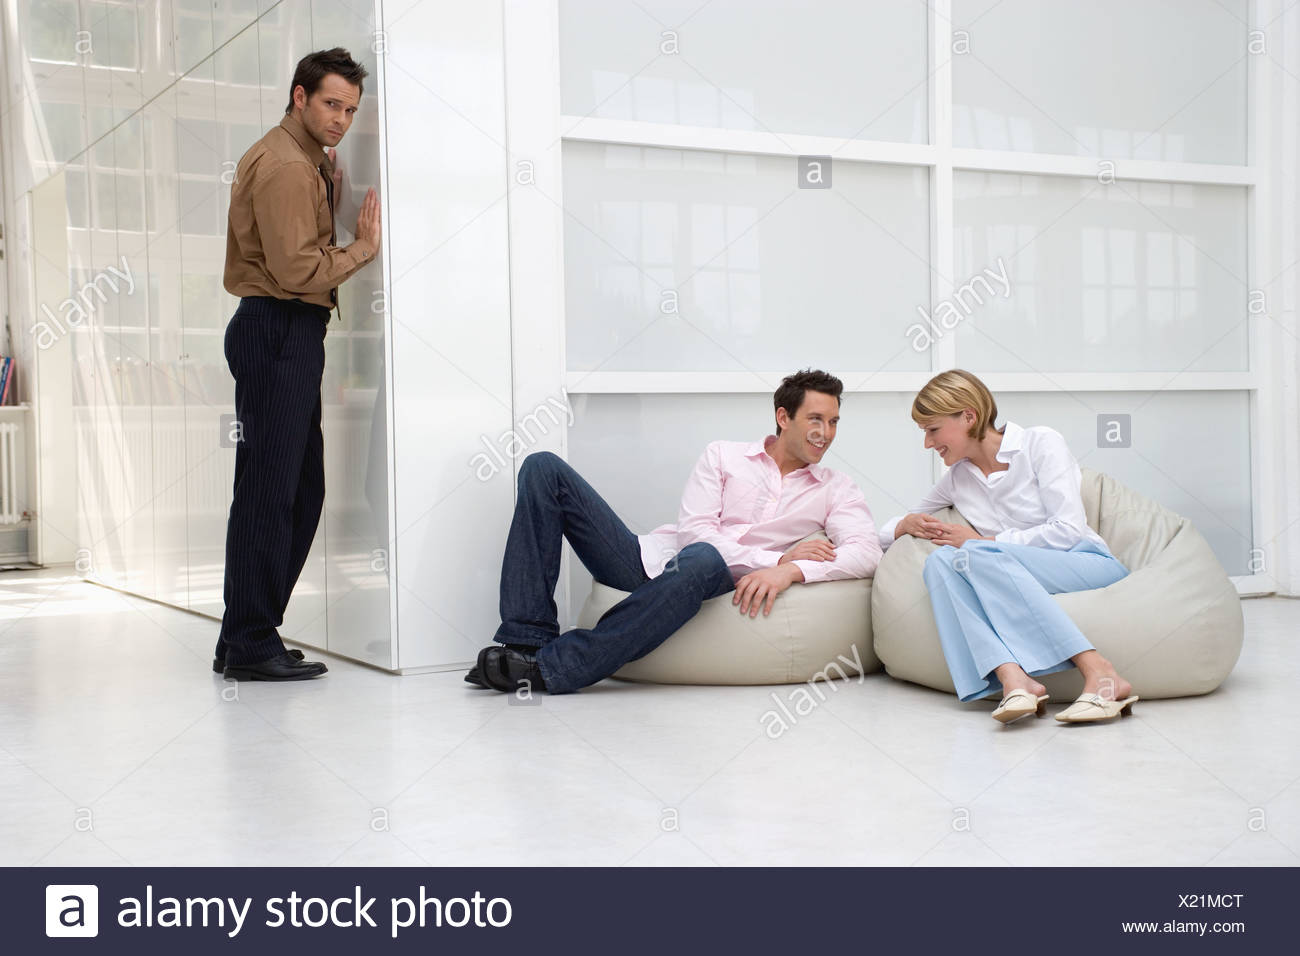 distrustful businessman listening to conversation of two business colleagues relaxing and gossiping - Stock Image